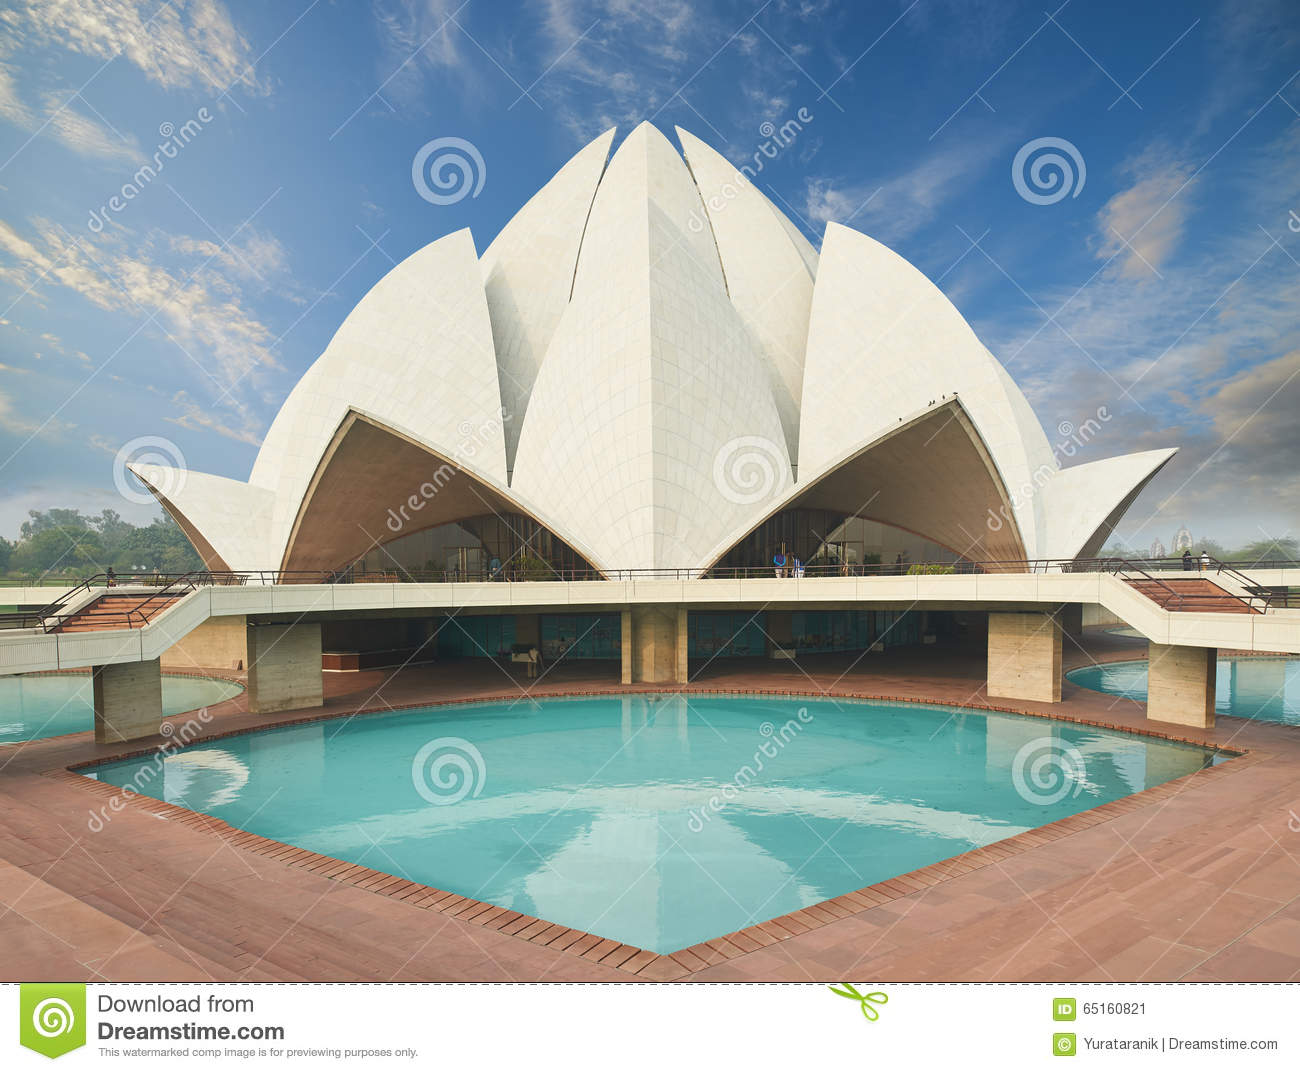 the lotus temple located